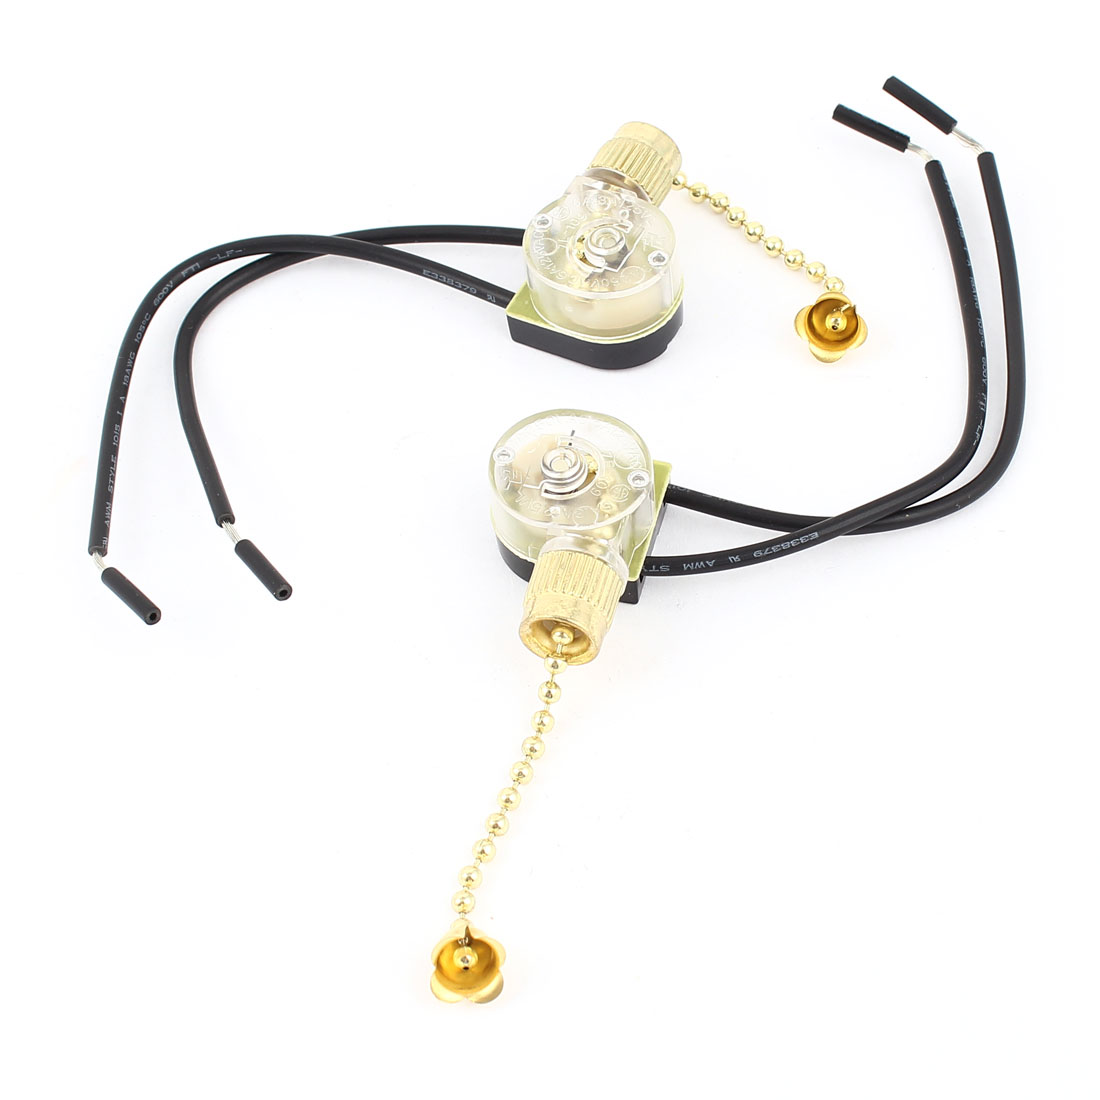 2PCS AC 3A 250V 6A 125V Wired Connector Ceiling Fan Pull Chain Switch Gold Tone